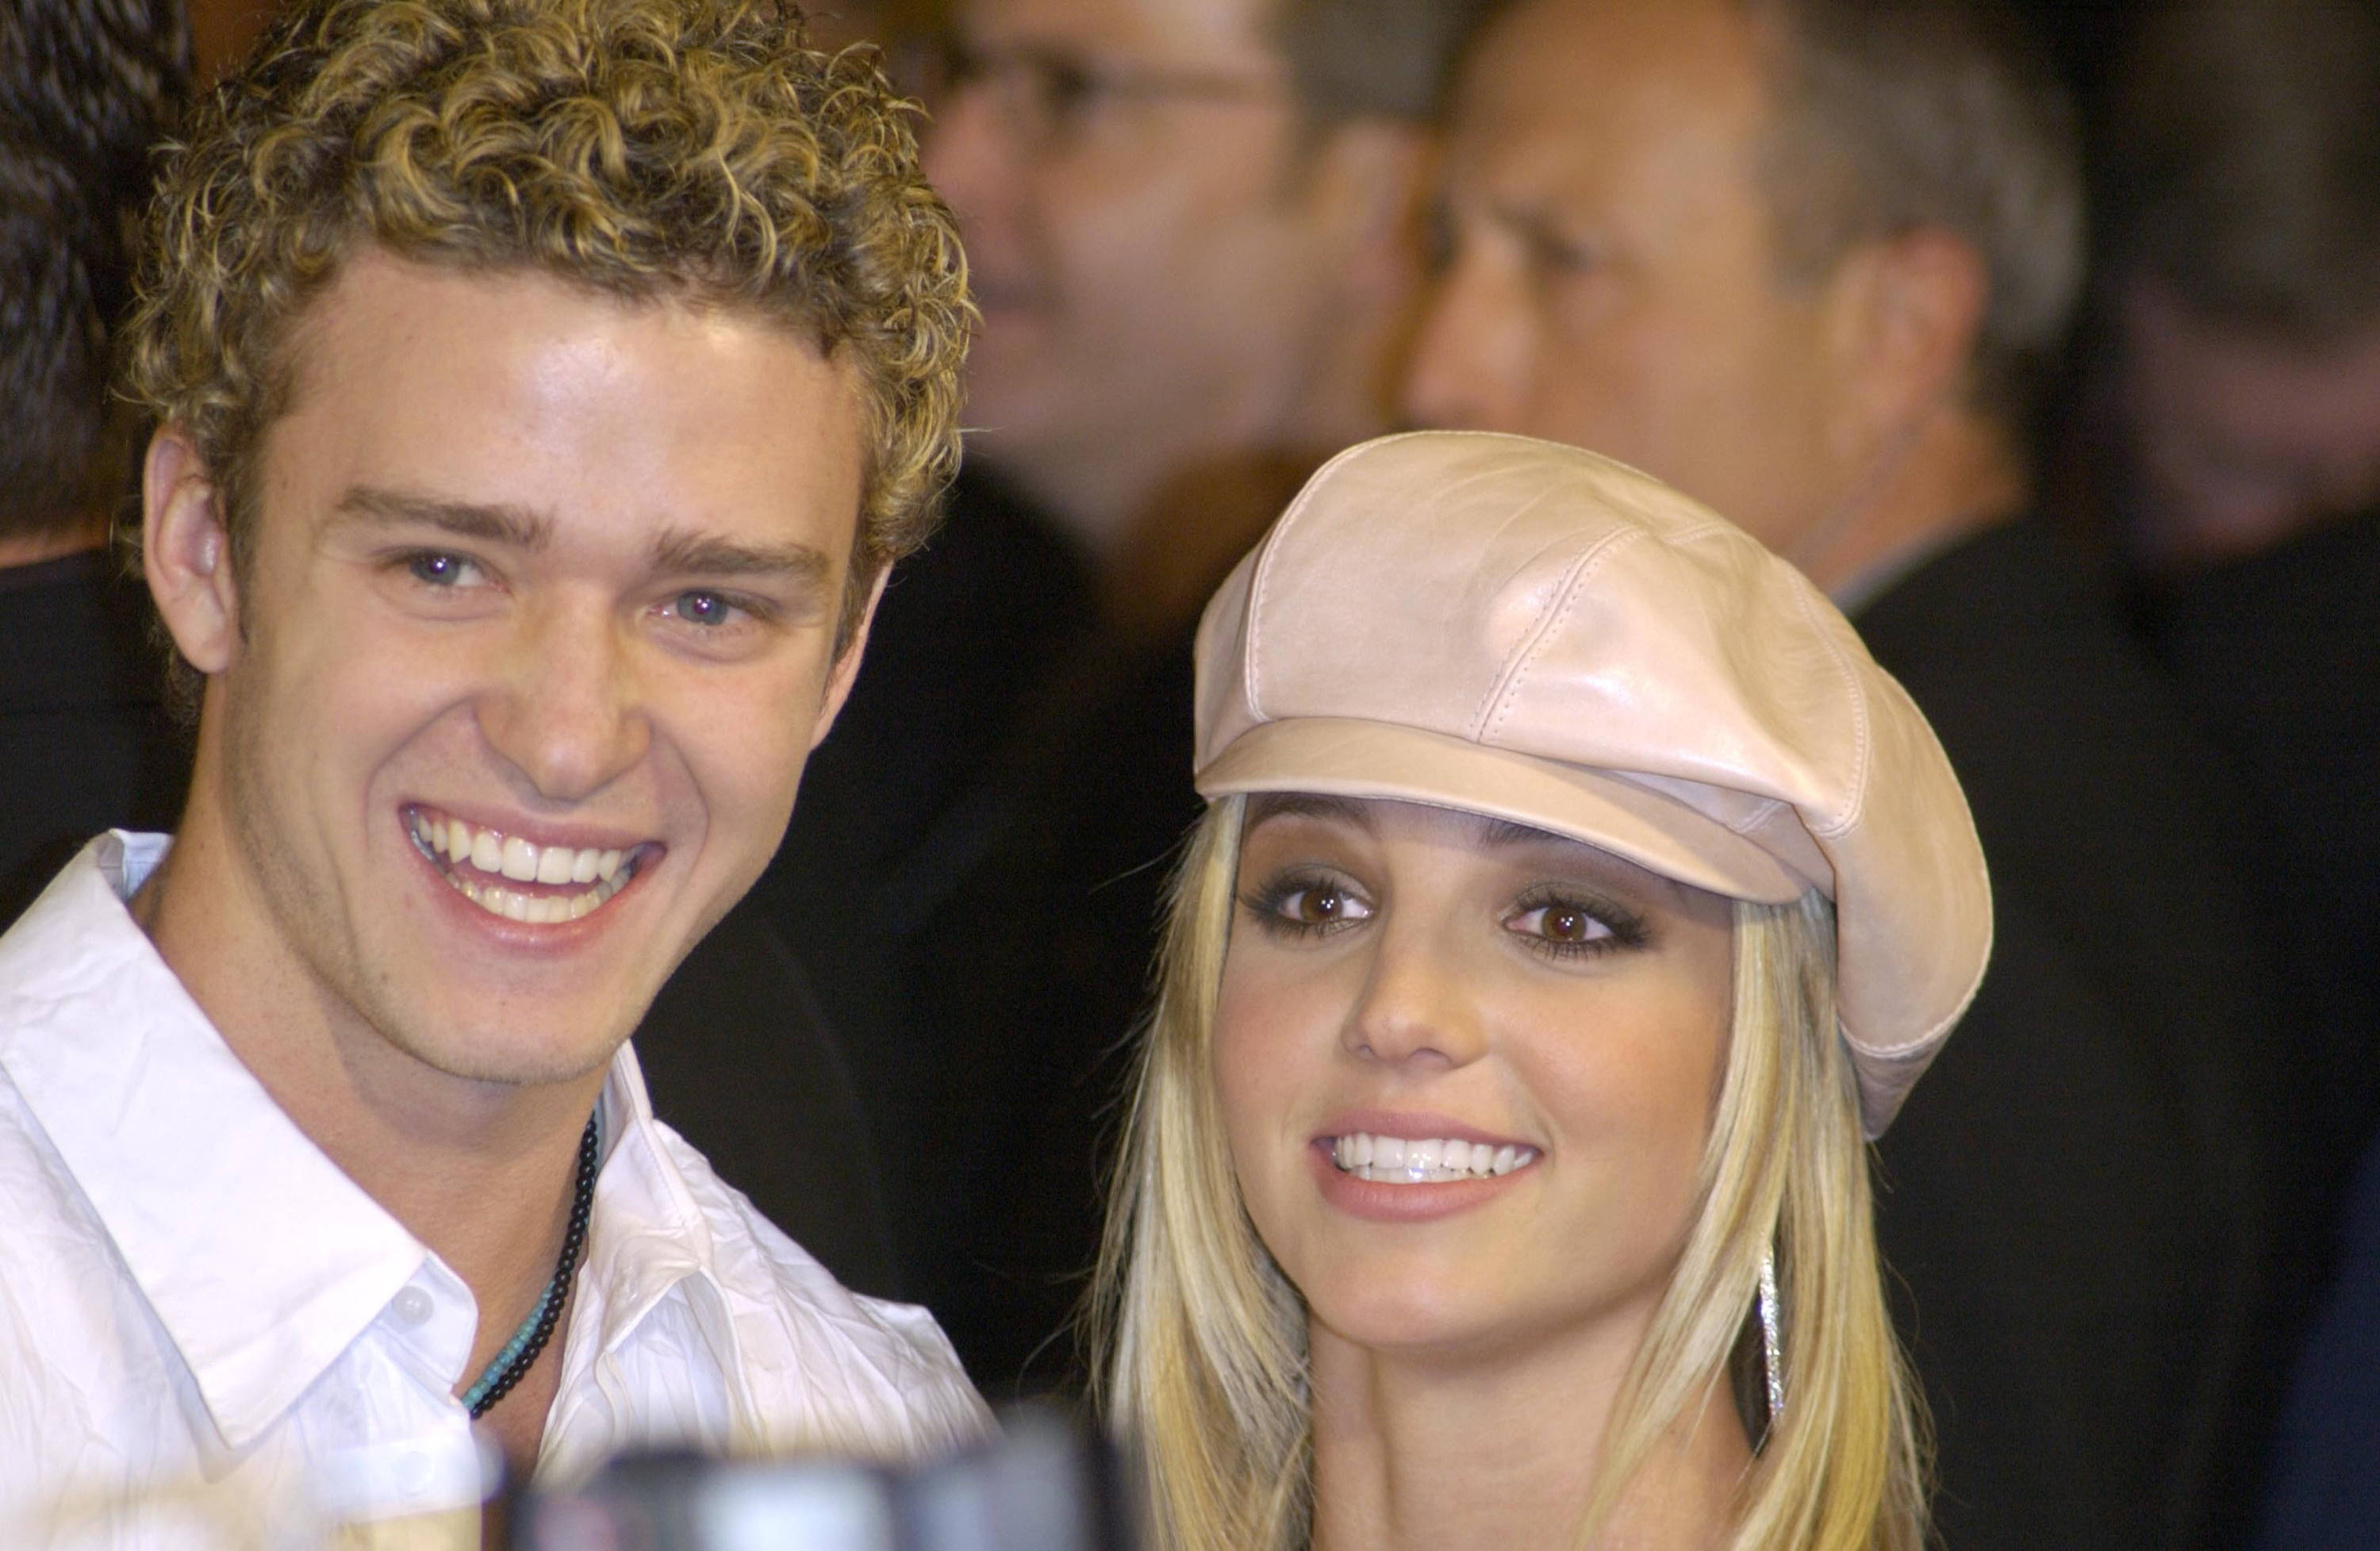 Britney Spears smiling with Justin Timberlake